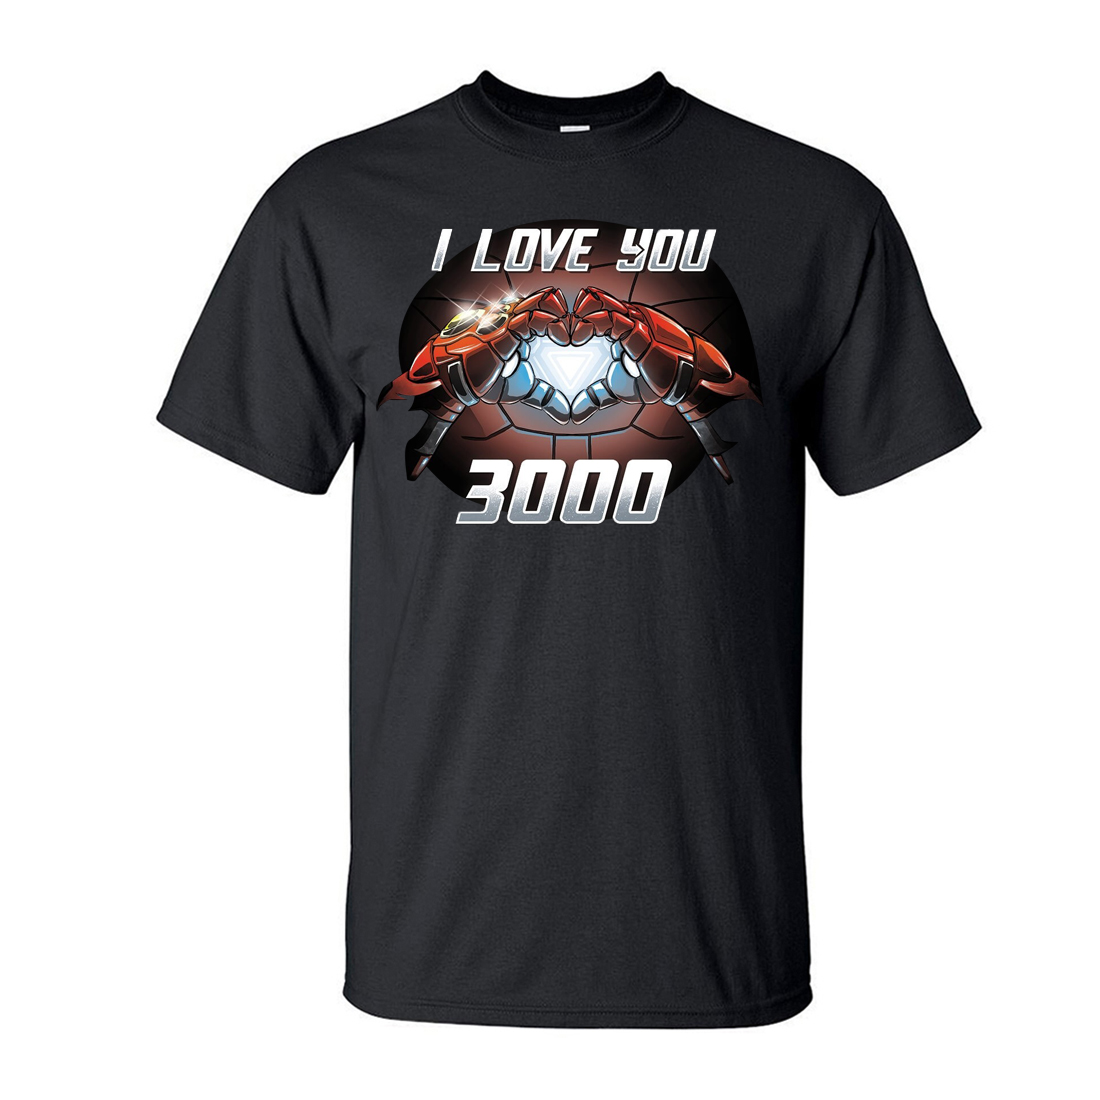 ALI shop ...  ... 33014983832 ... 1 ... Tony Stark I Love You 3000 T-Shirt Men The Avengers Iron Man Moive Shirt 2019 New Summer Casual Plus Size Tops Tees S-3XL ...